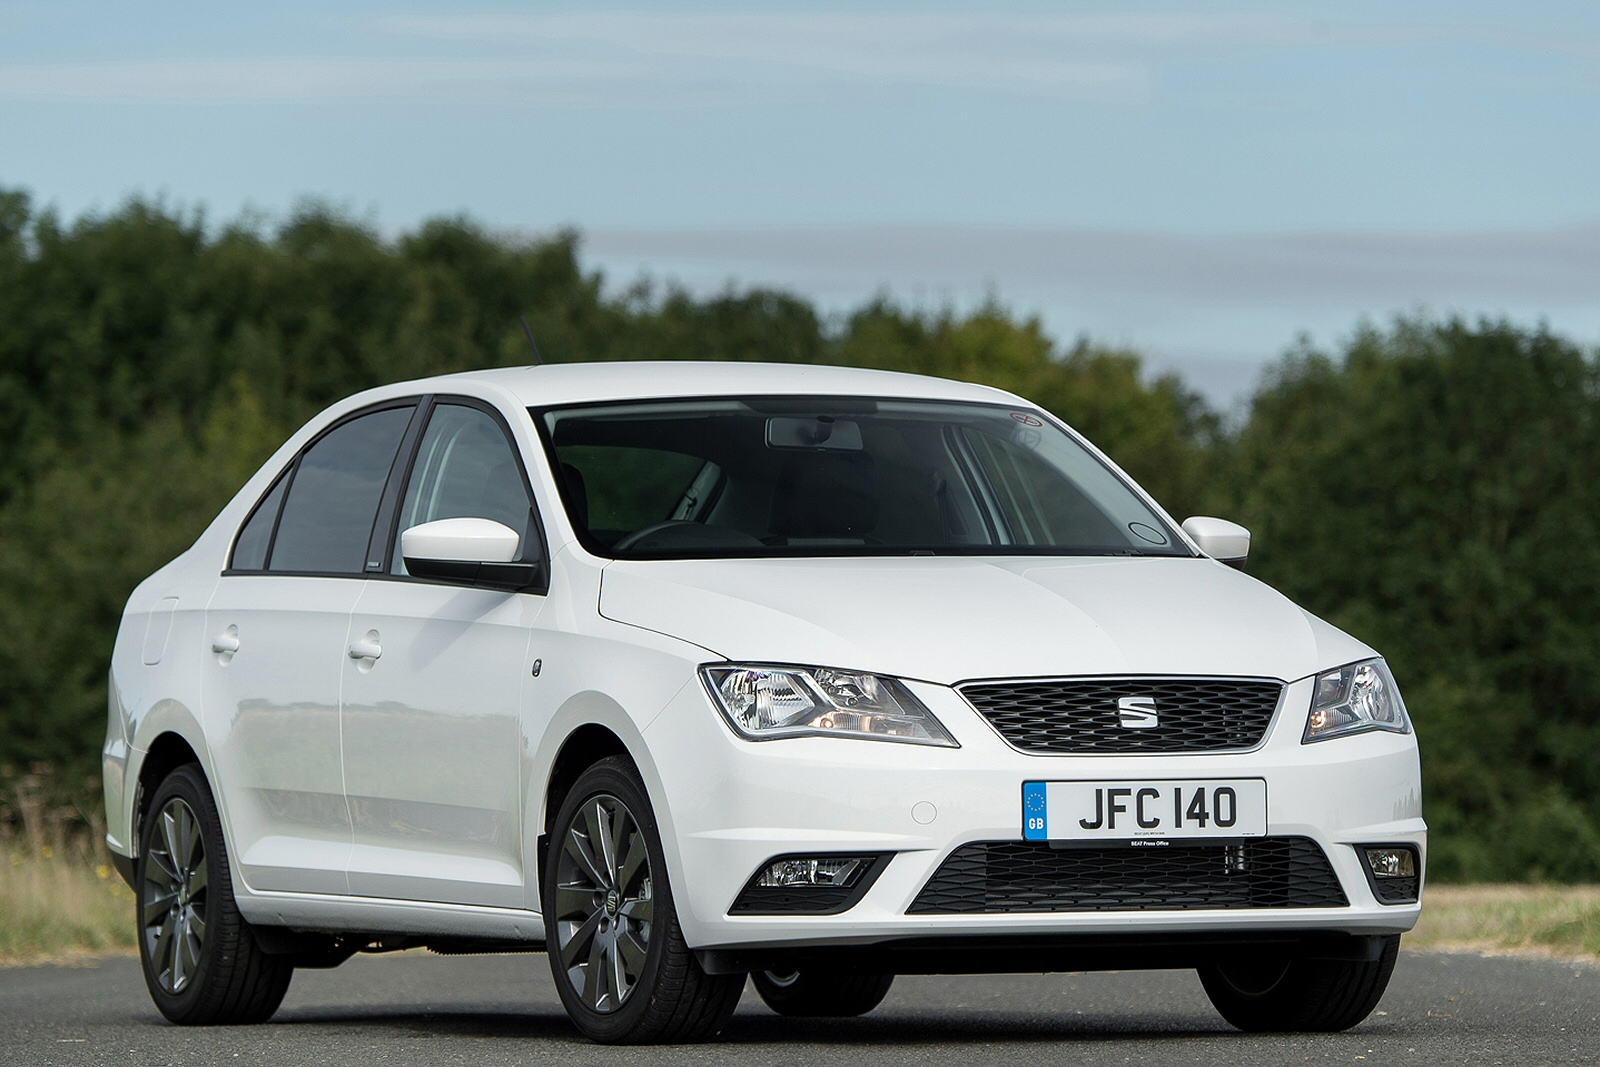 New Seat Toledo 1 0 Tsi 110 Xcellence 5dr Petrol Hatchback For Sale Bristol Street